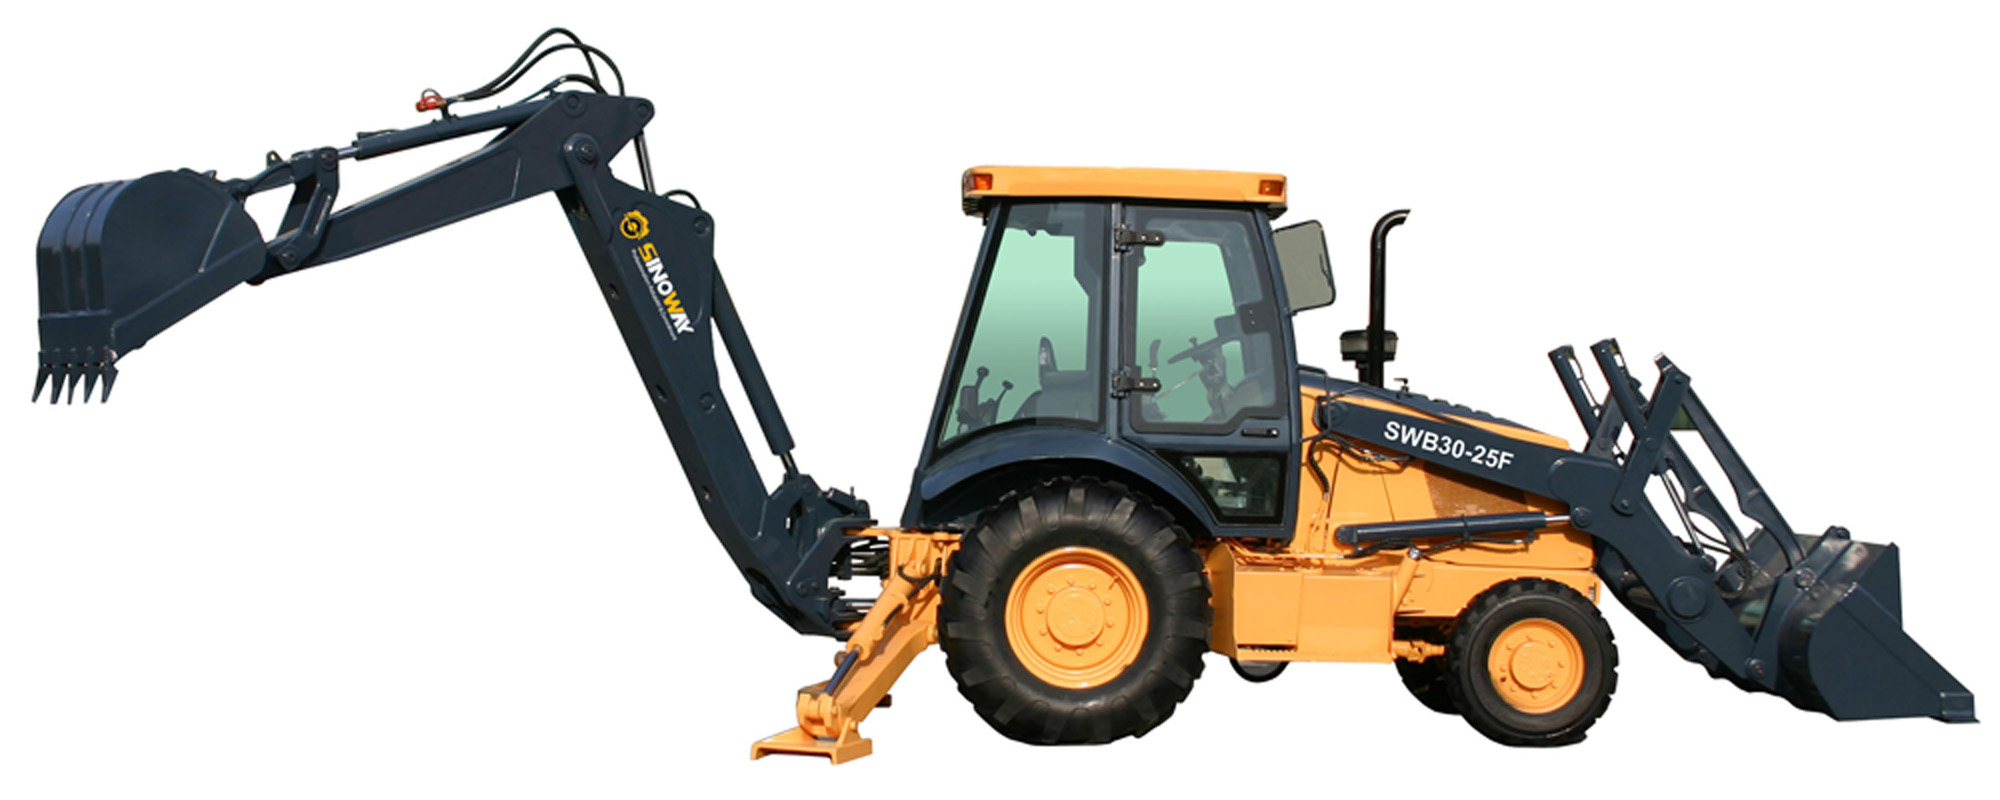 Renting A Backhoe Loader – Factors To Consider - Bobcatco ...